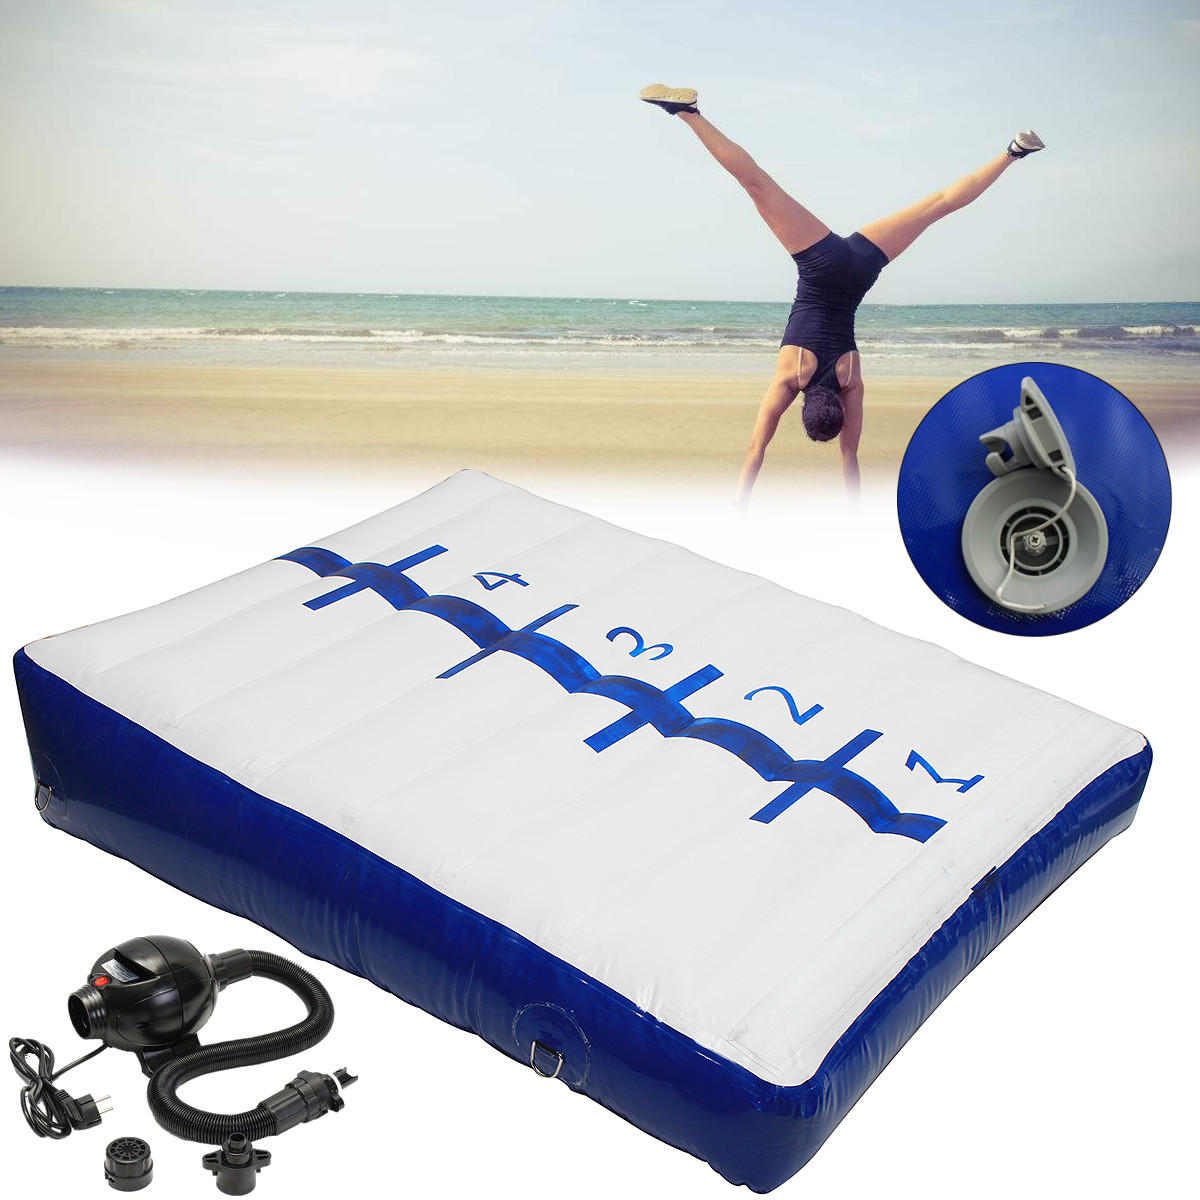 78.7x59ft Inflatable Gymnastics Tumbling Mat Home Air Track Floor Sports Protective Gear With Pump